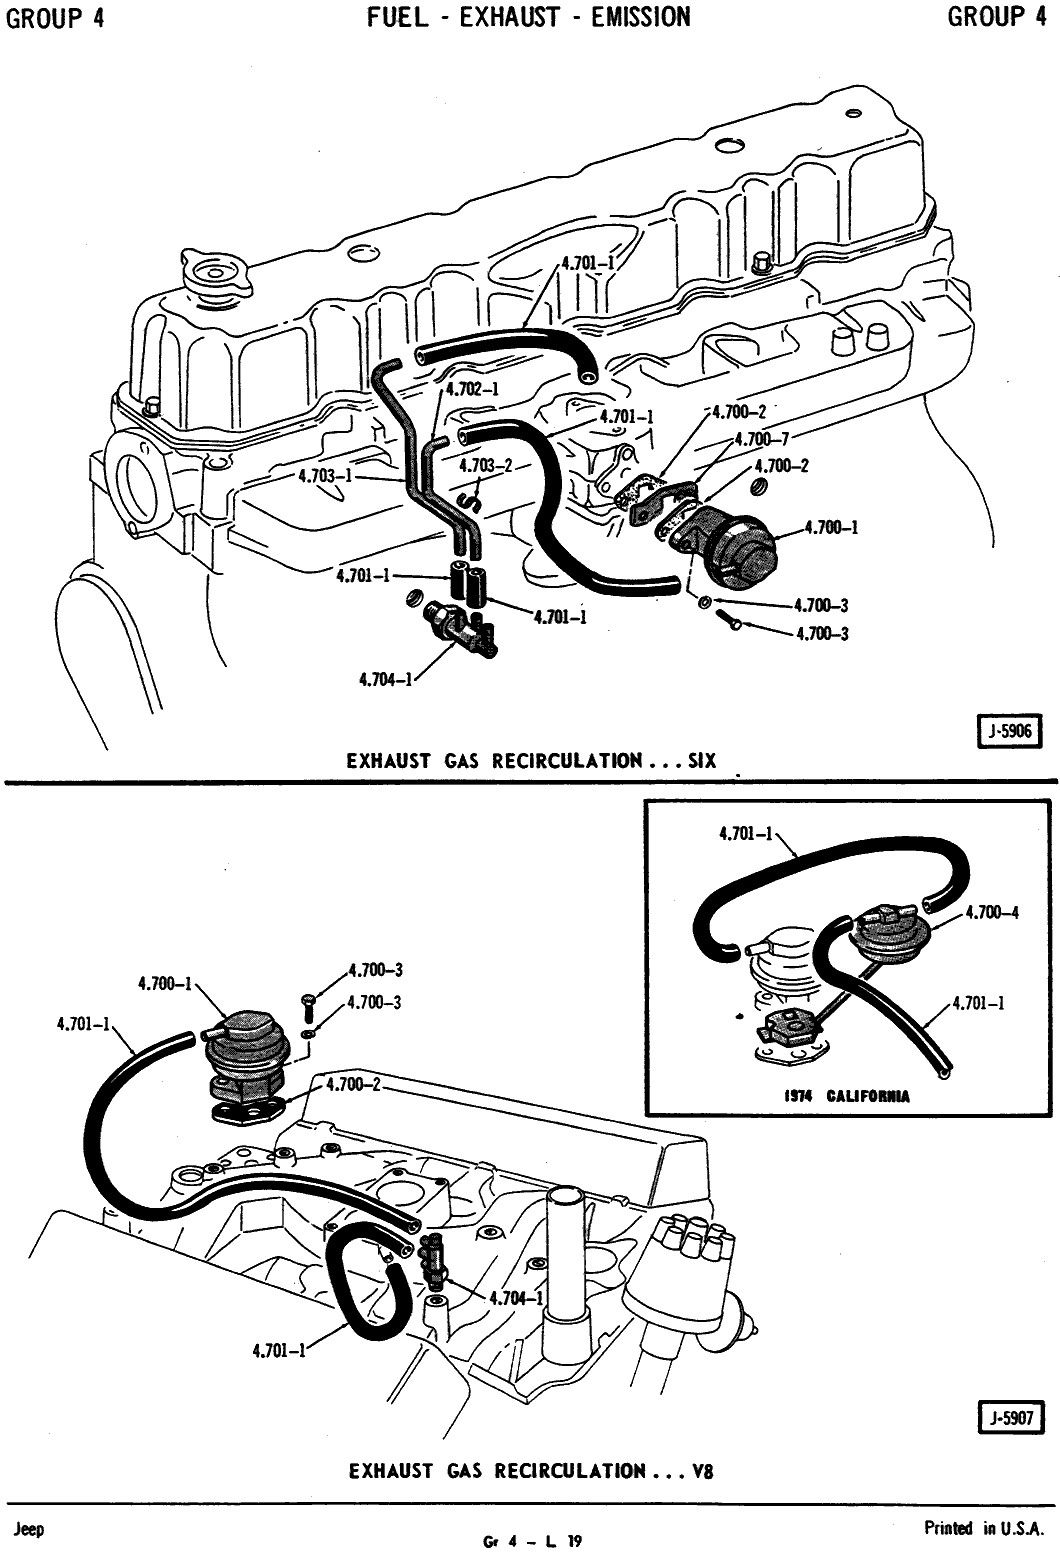 rc car wiring diagram further 1999 lexus es 300 fuse box diagram